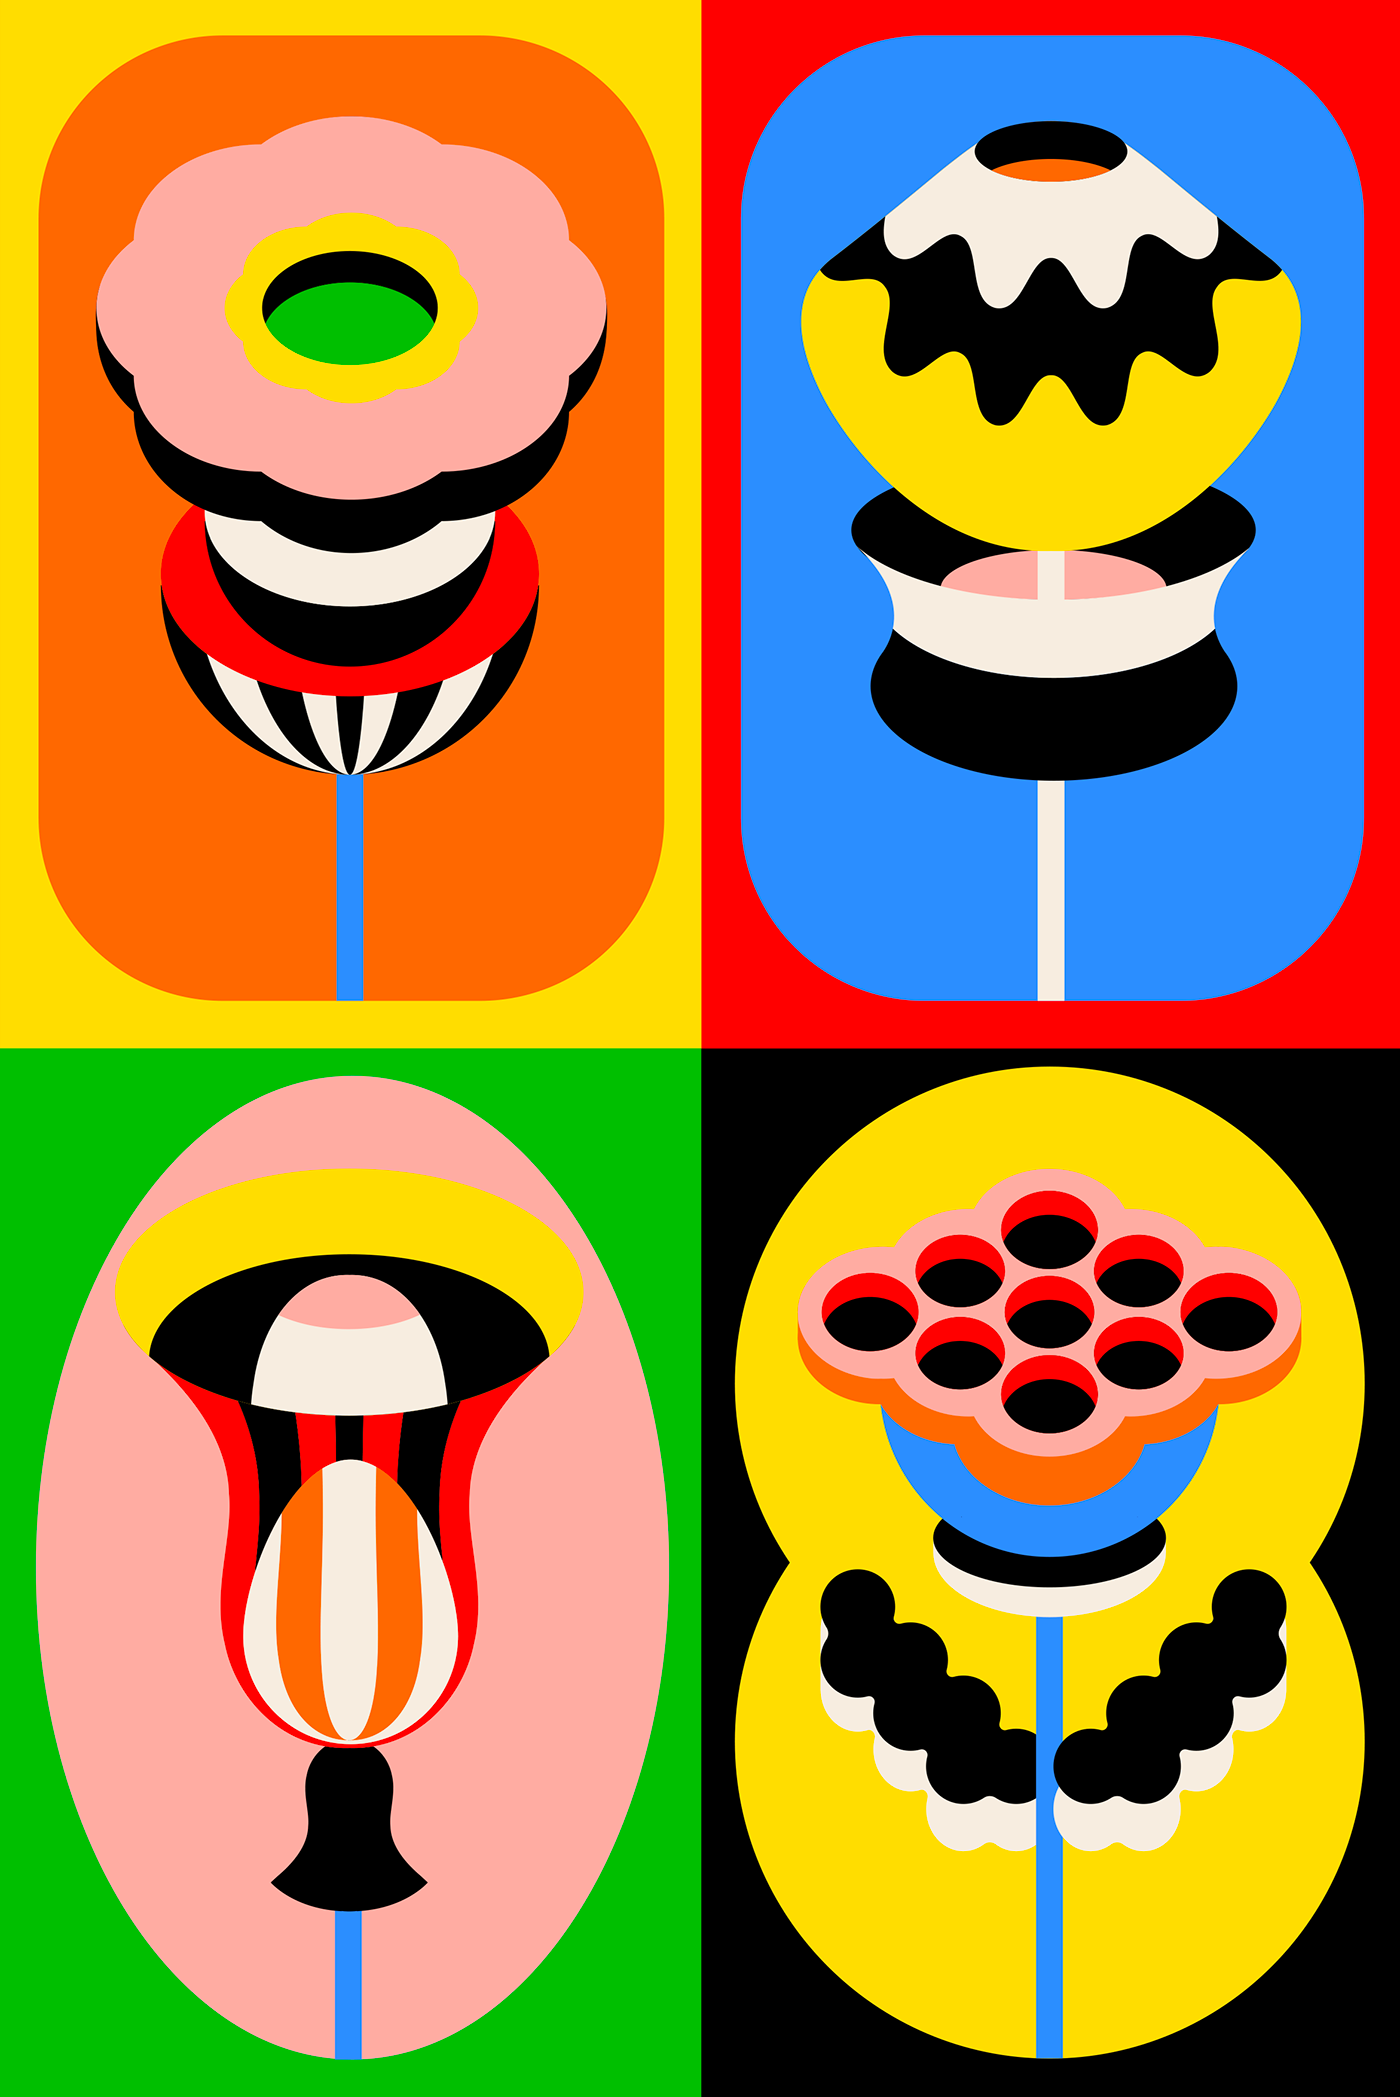 abstract,colorblock,colorful,flat,flower,graphic,ILLUSTRATION ,minimalist,popart,poster